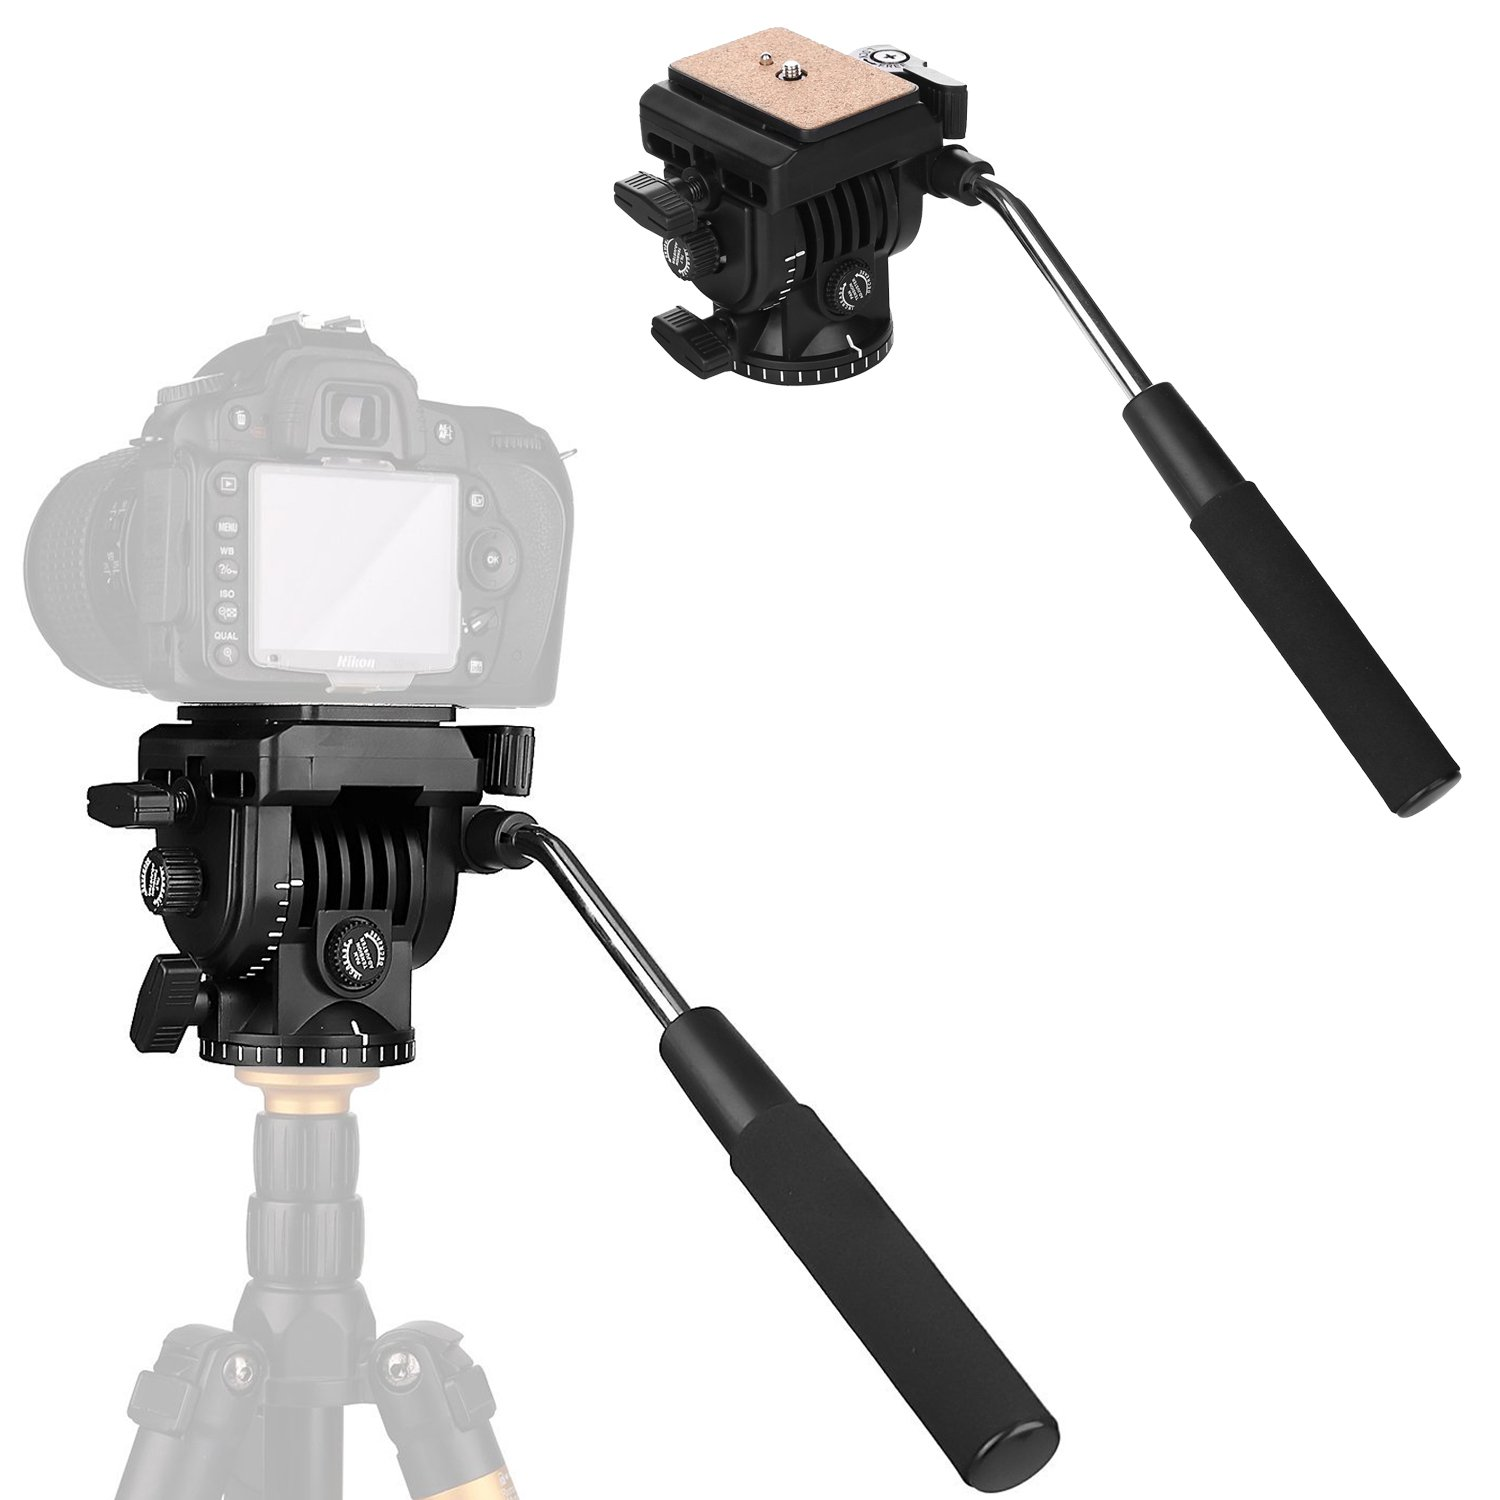 Meco VT-1510 Tripod Action Fluid Drag Head Video Camera by MECO